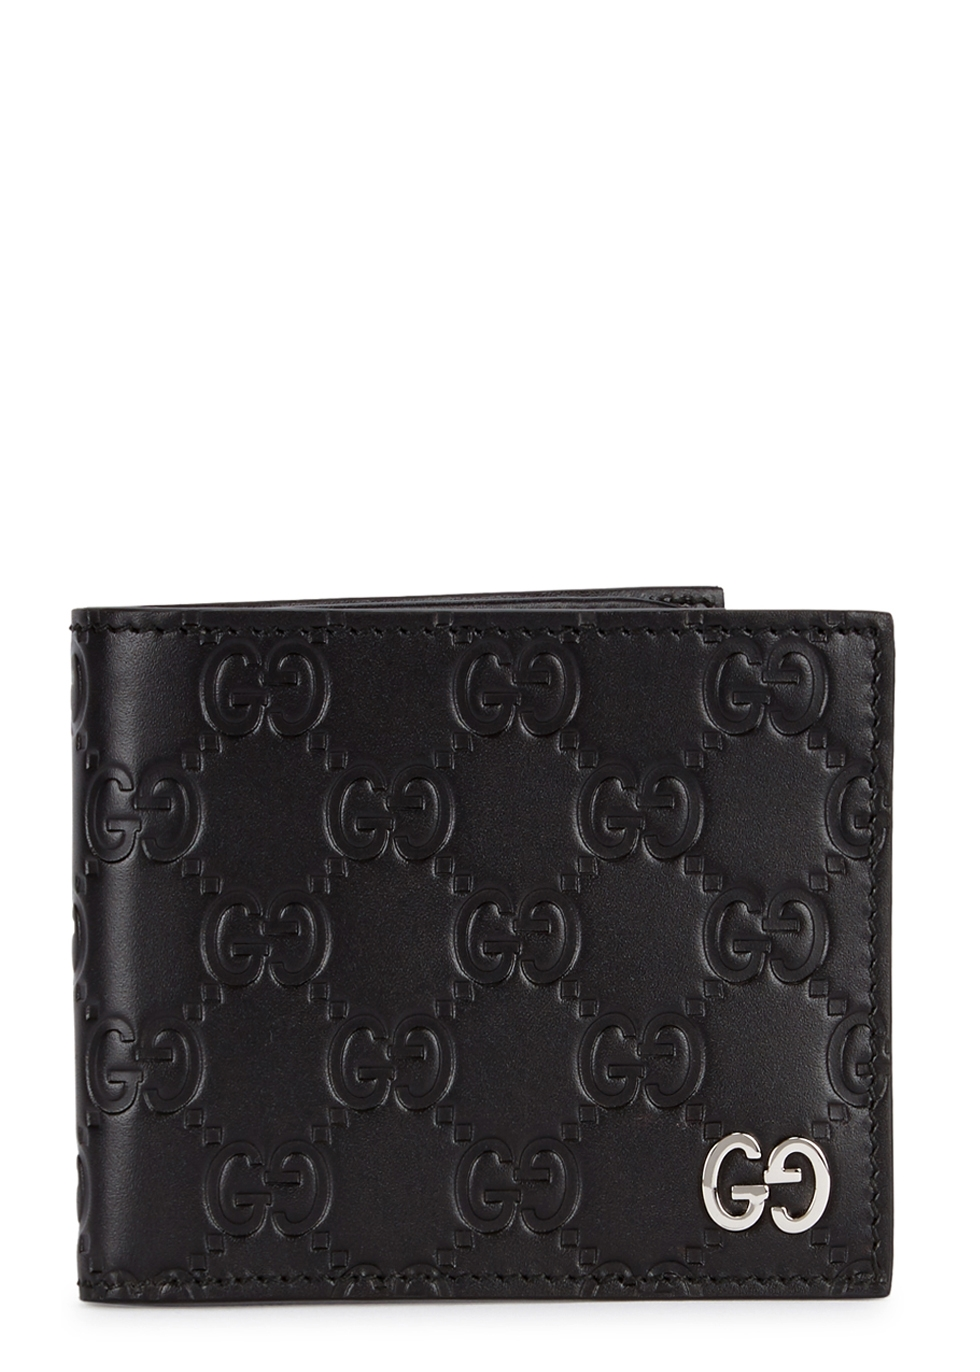 GUCCI GG MONOGRAMMED LEATHER WALLET